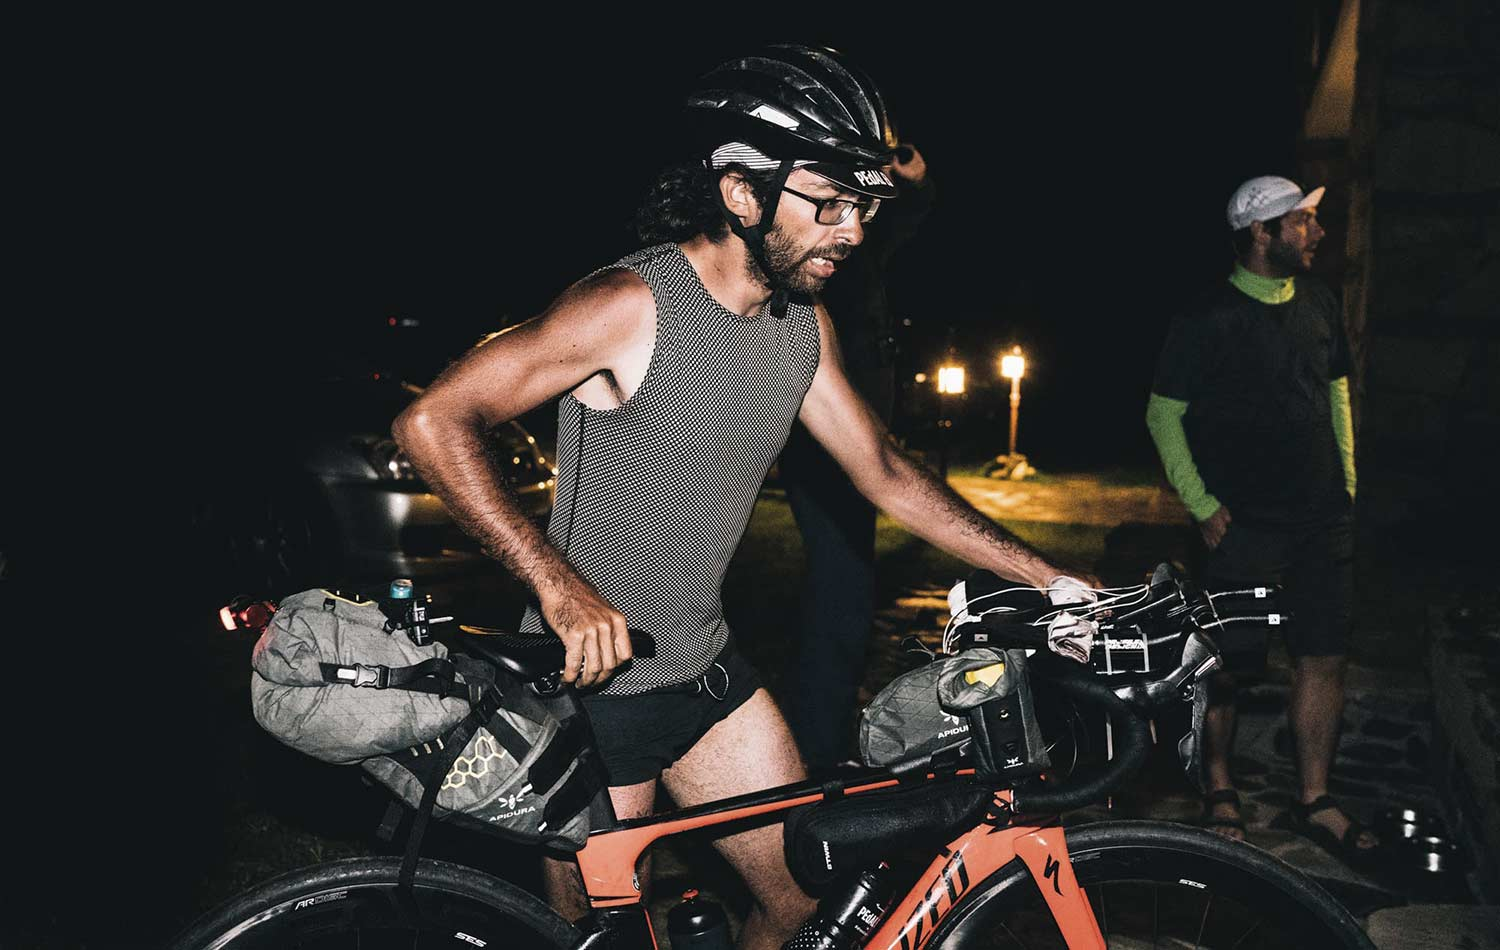 transcontinental race testimonial Stephane Ouaja Alleycats fixed gear